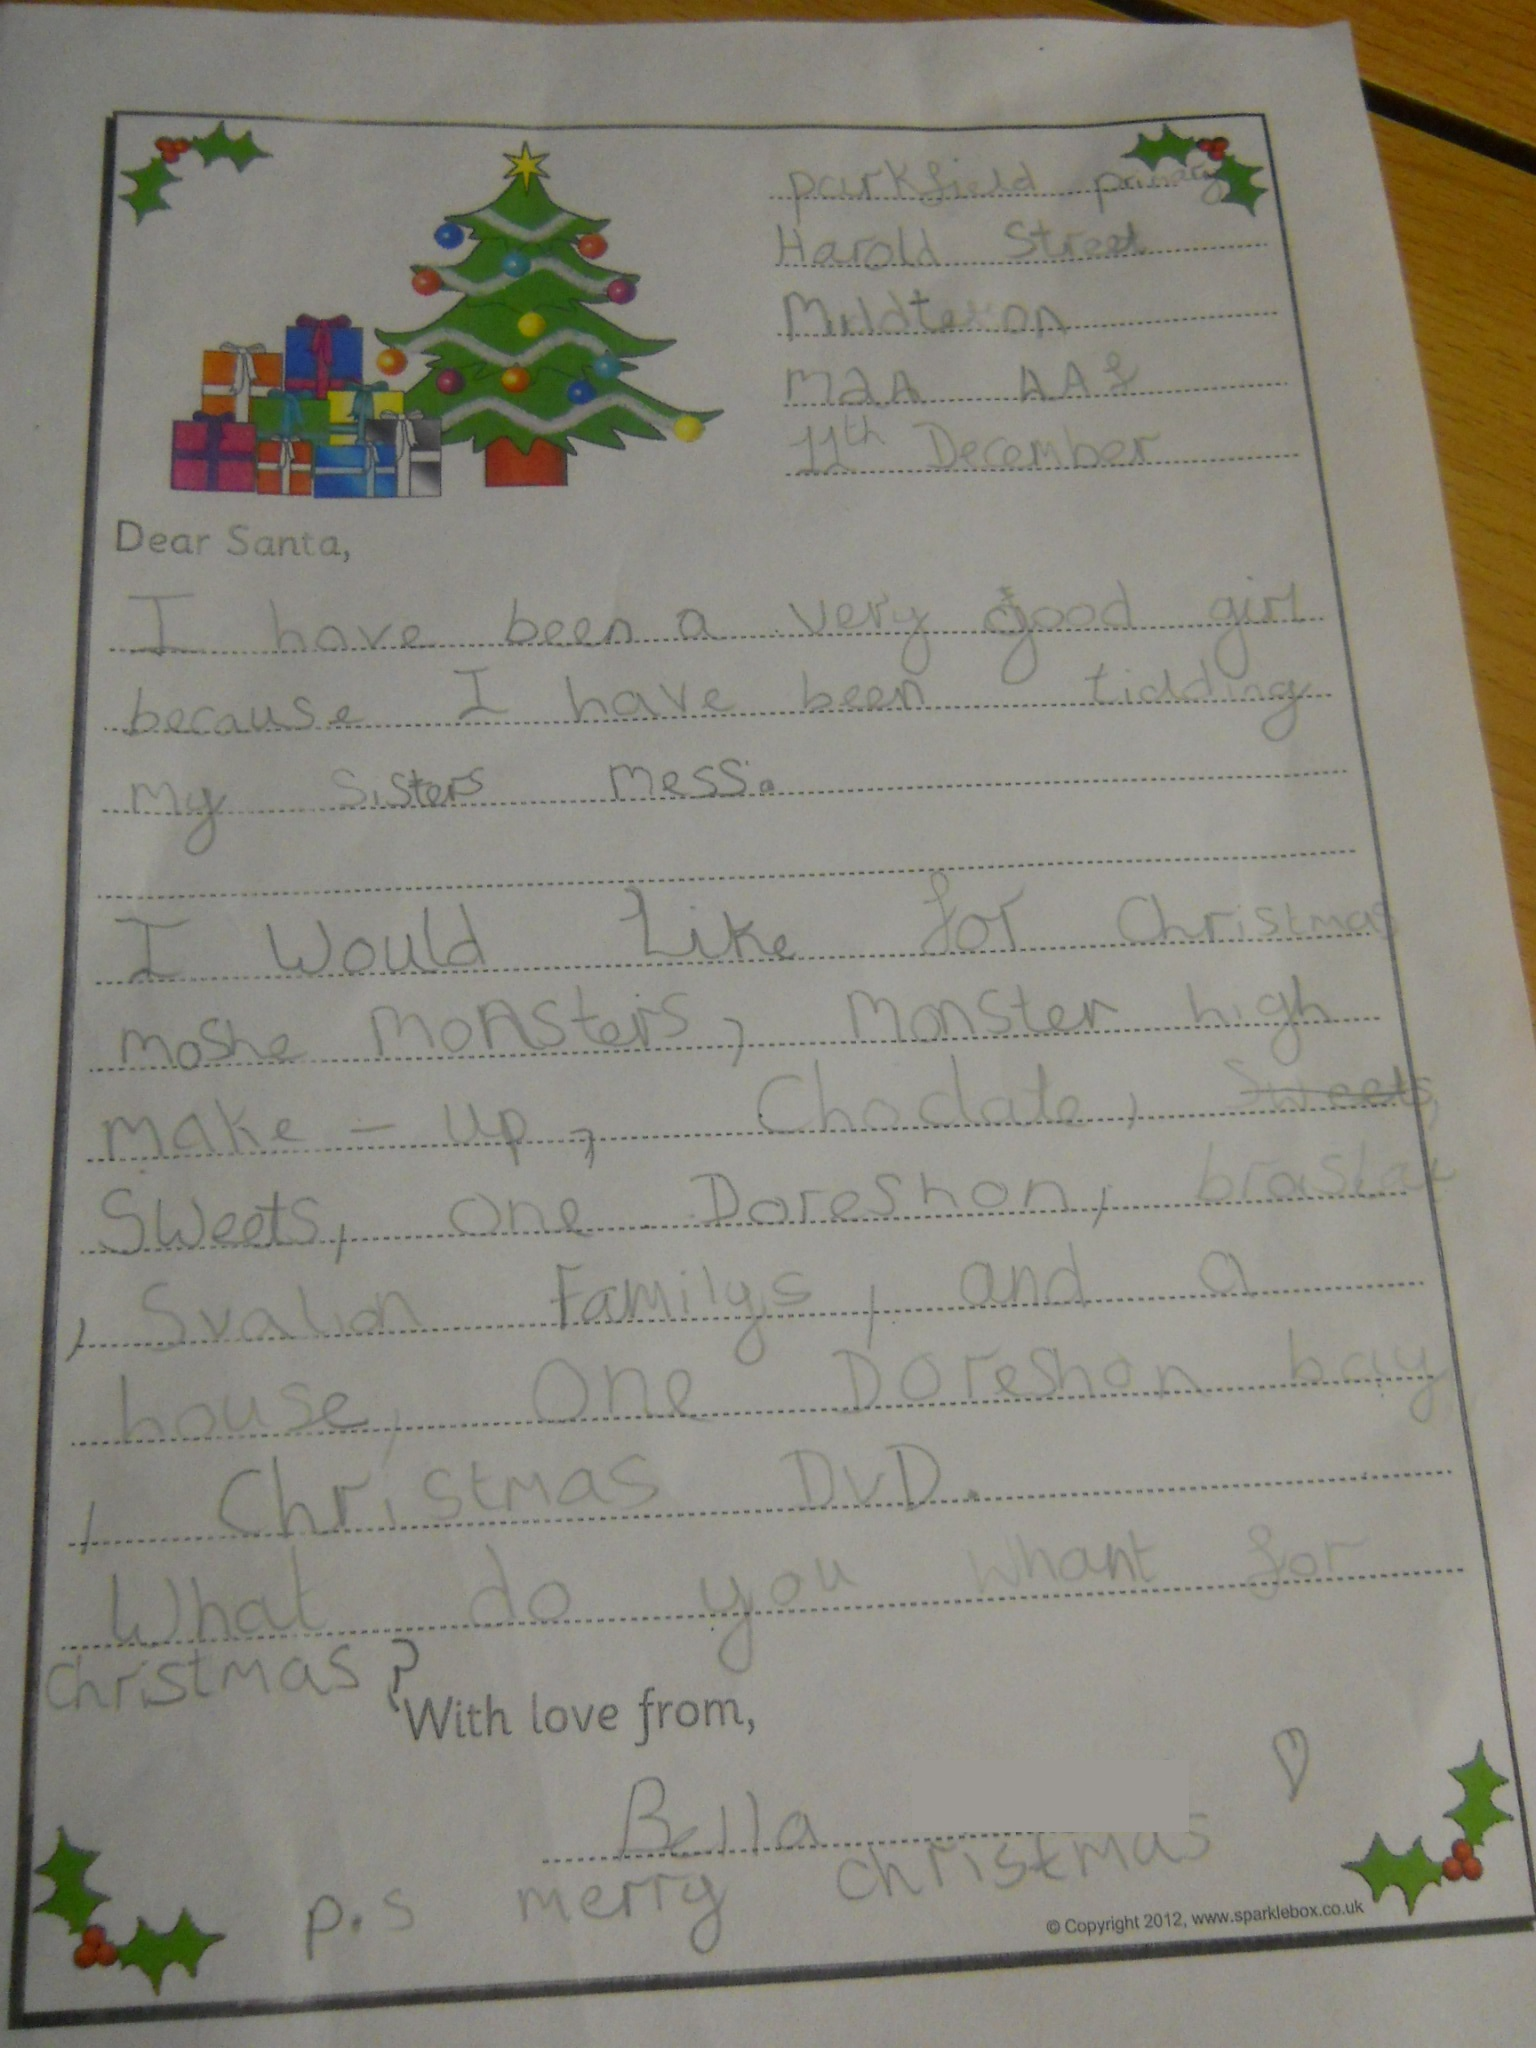 Parkfield primary school year 2 posting letters to santa dscn1687 spiritdancerdesigns Image collections